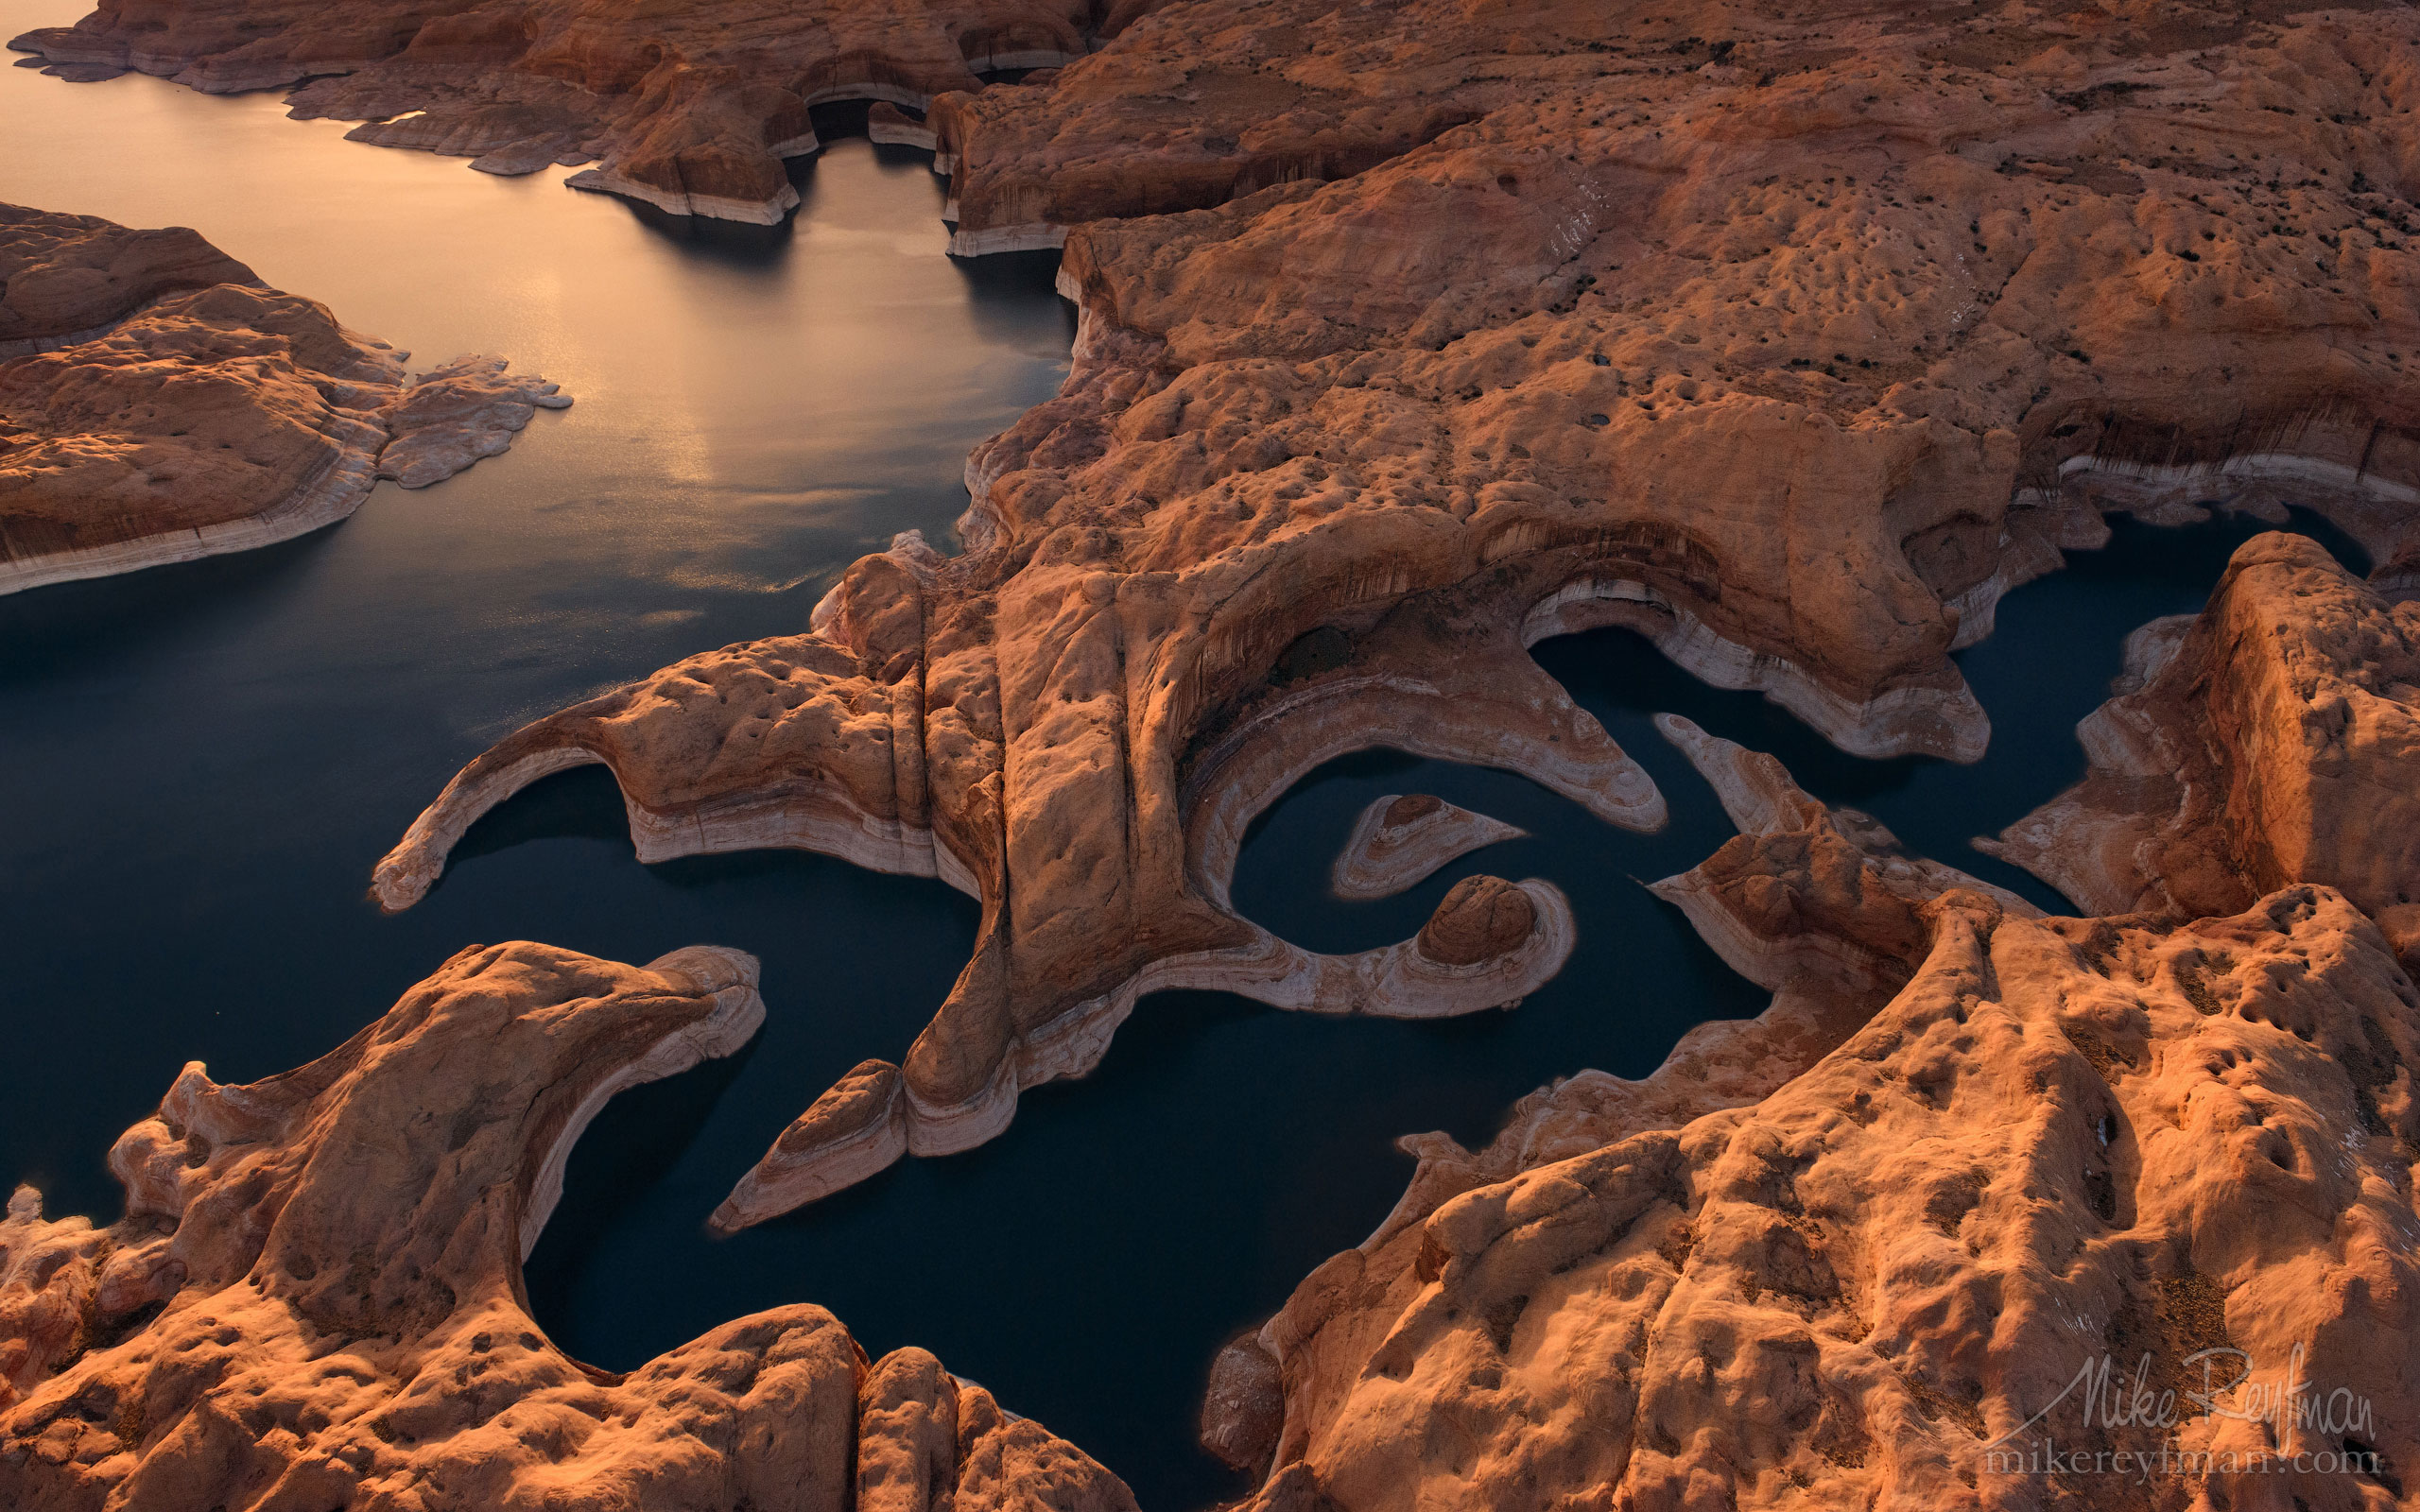 Reflection Canyon. Colorado River, Lake Powell, Glen Canyon NRA. Uta/Arizona, USA. Aerial 108-LP3_D8C9497.jpg - Lake Powell, Glen Canyon NAR. Colorado and Sun Juan Rivers. Utah/Arizona, USA  - Mike Reyfman Photography